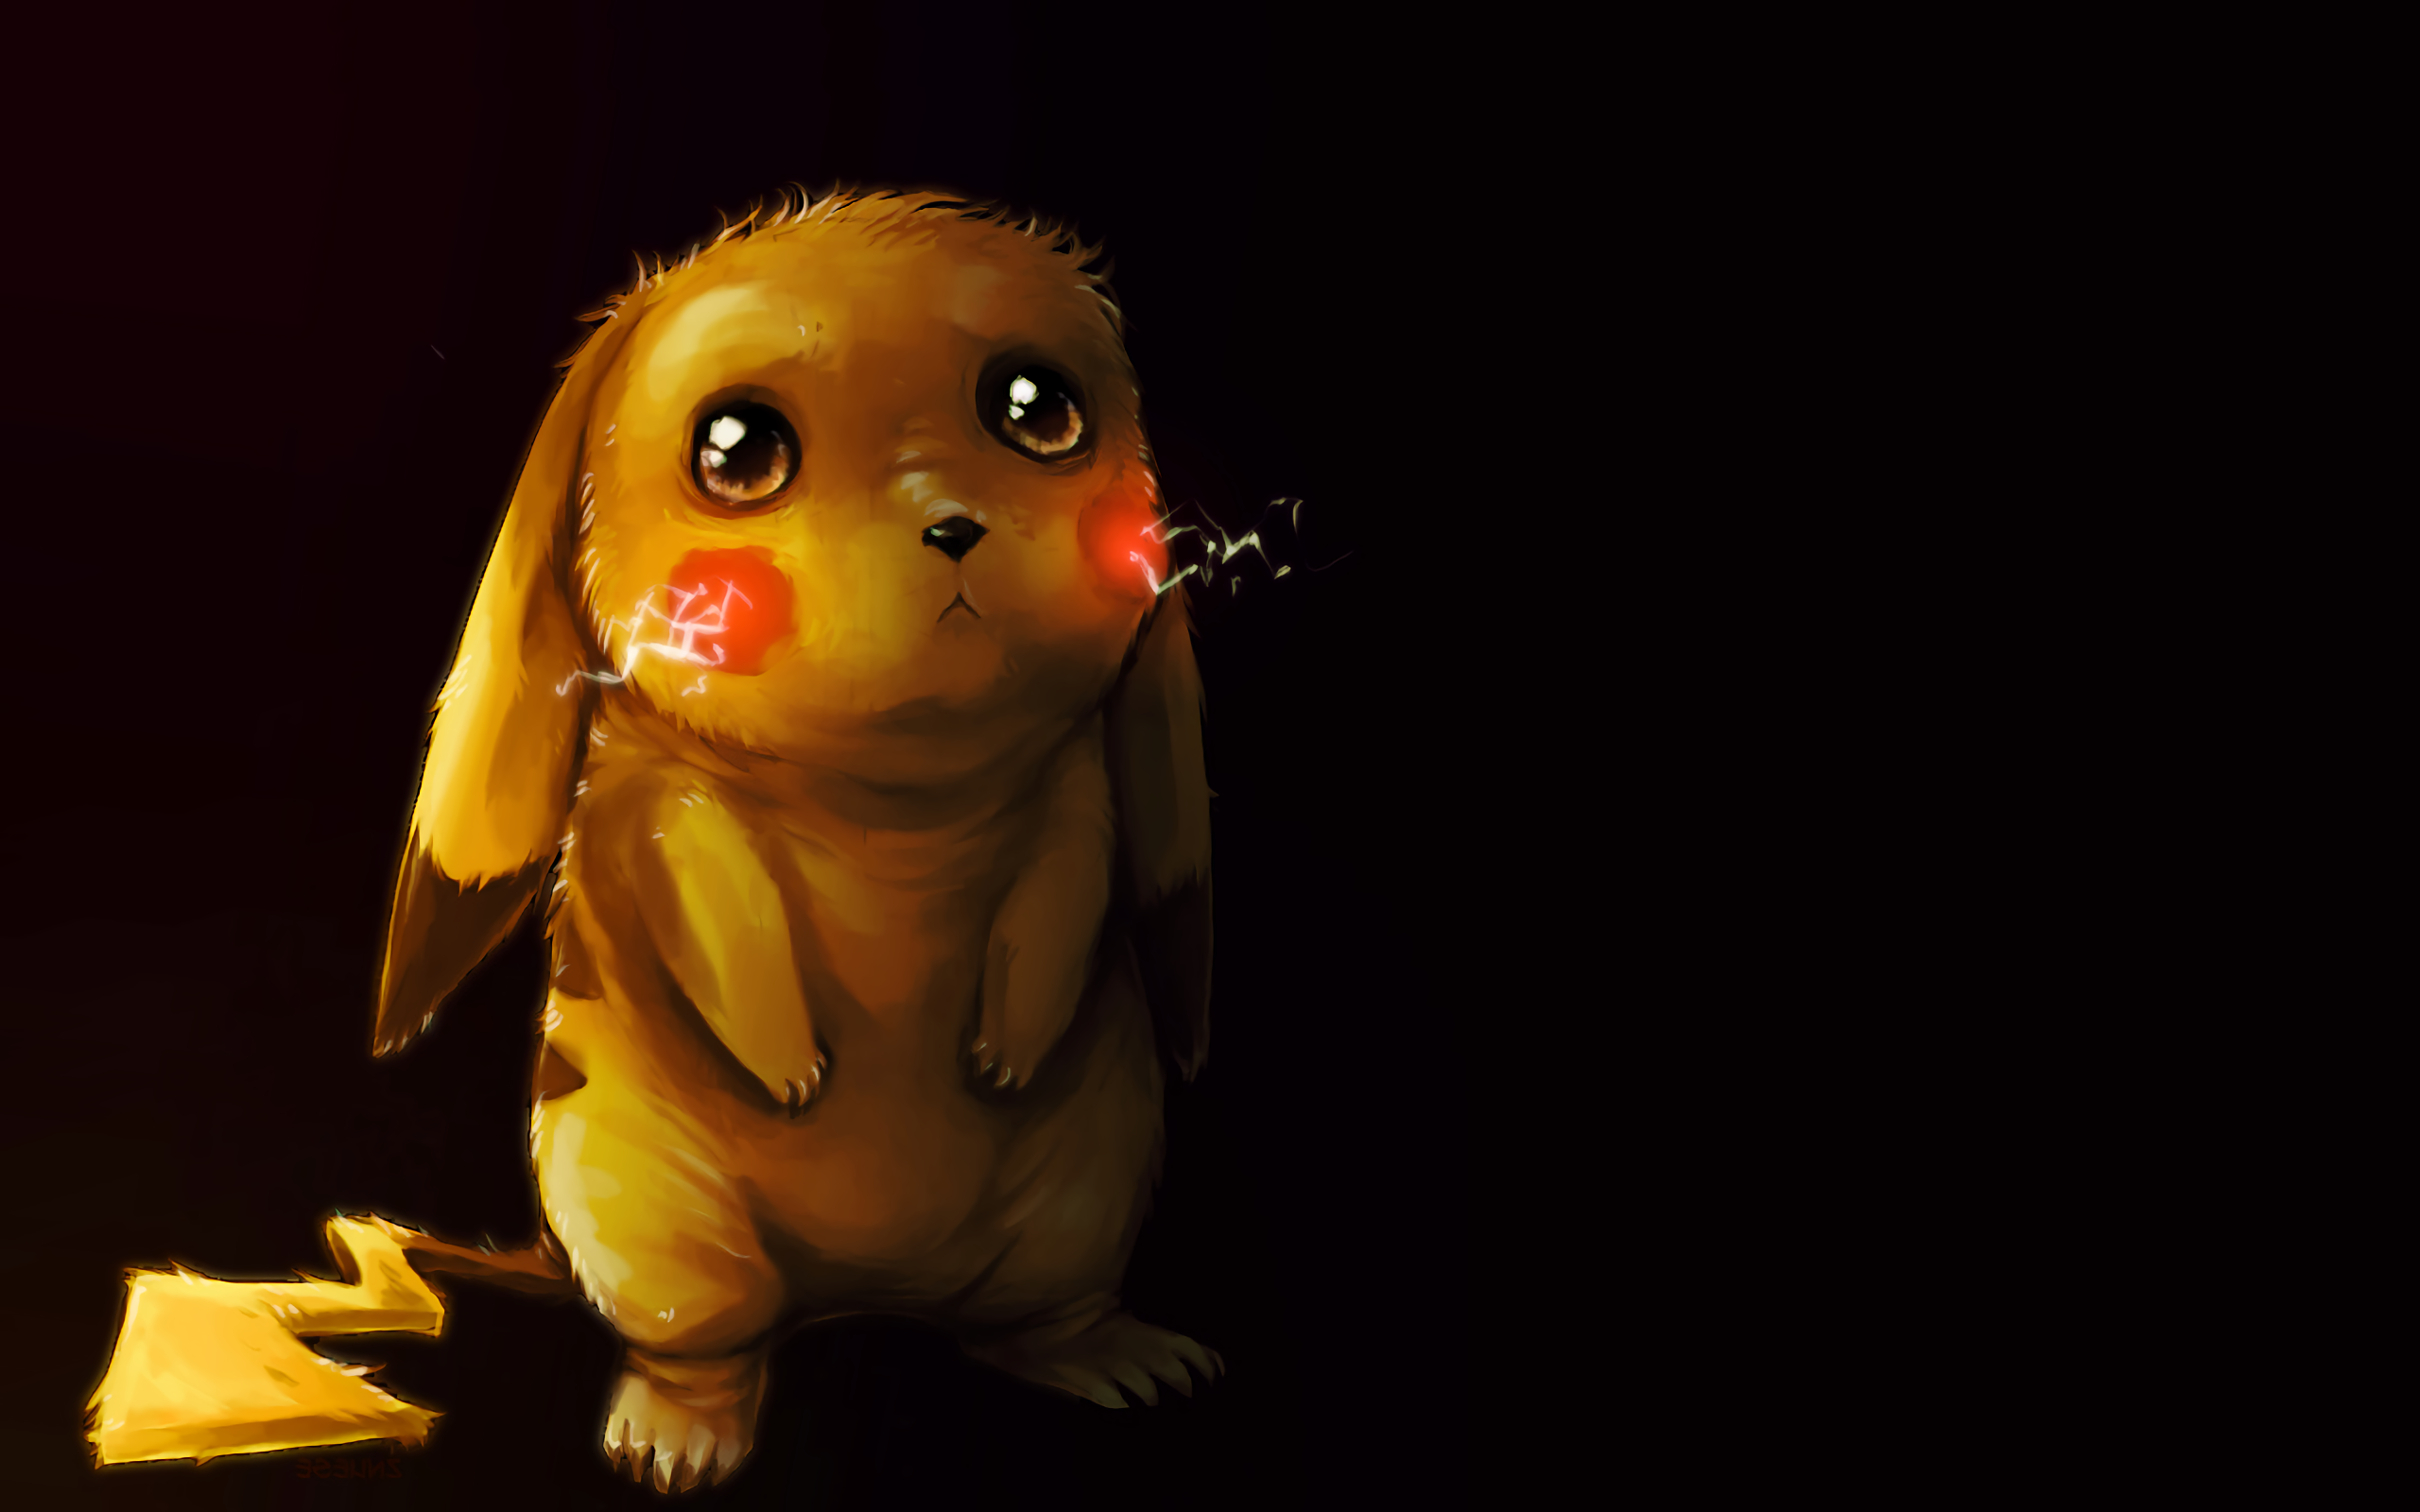 317 Pikachu HD Wallpapers Background Images 2560x1600